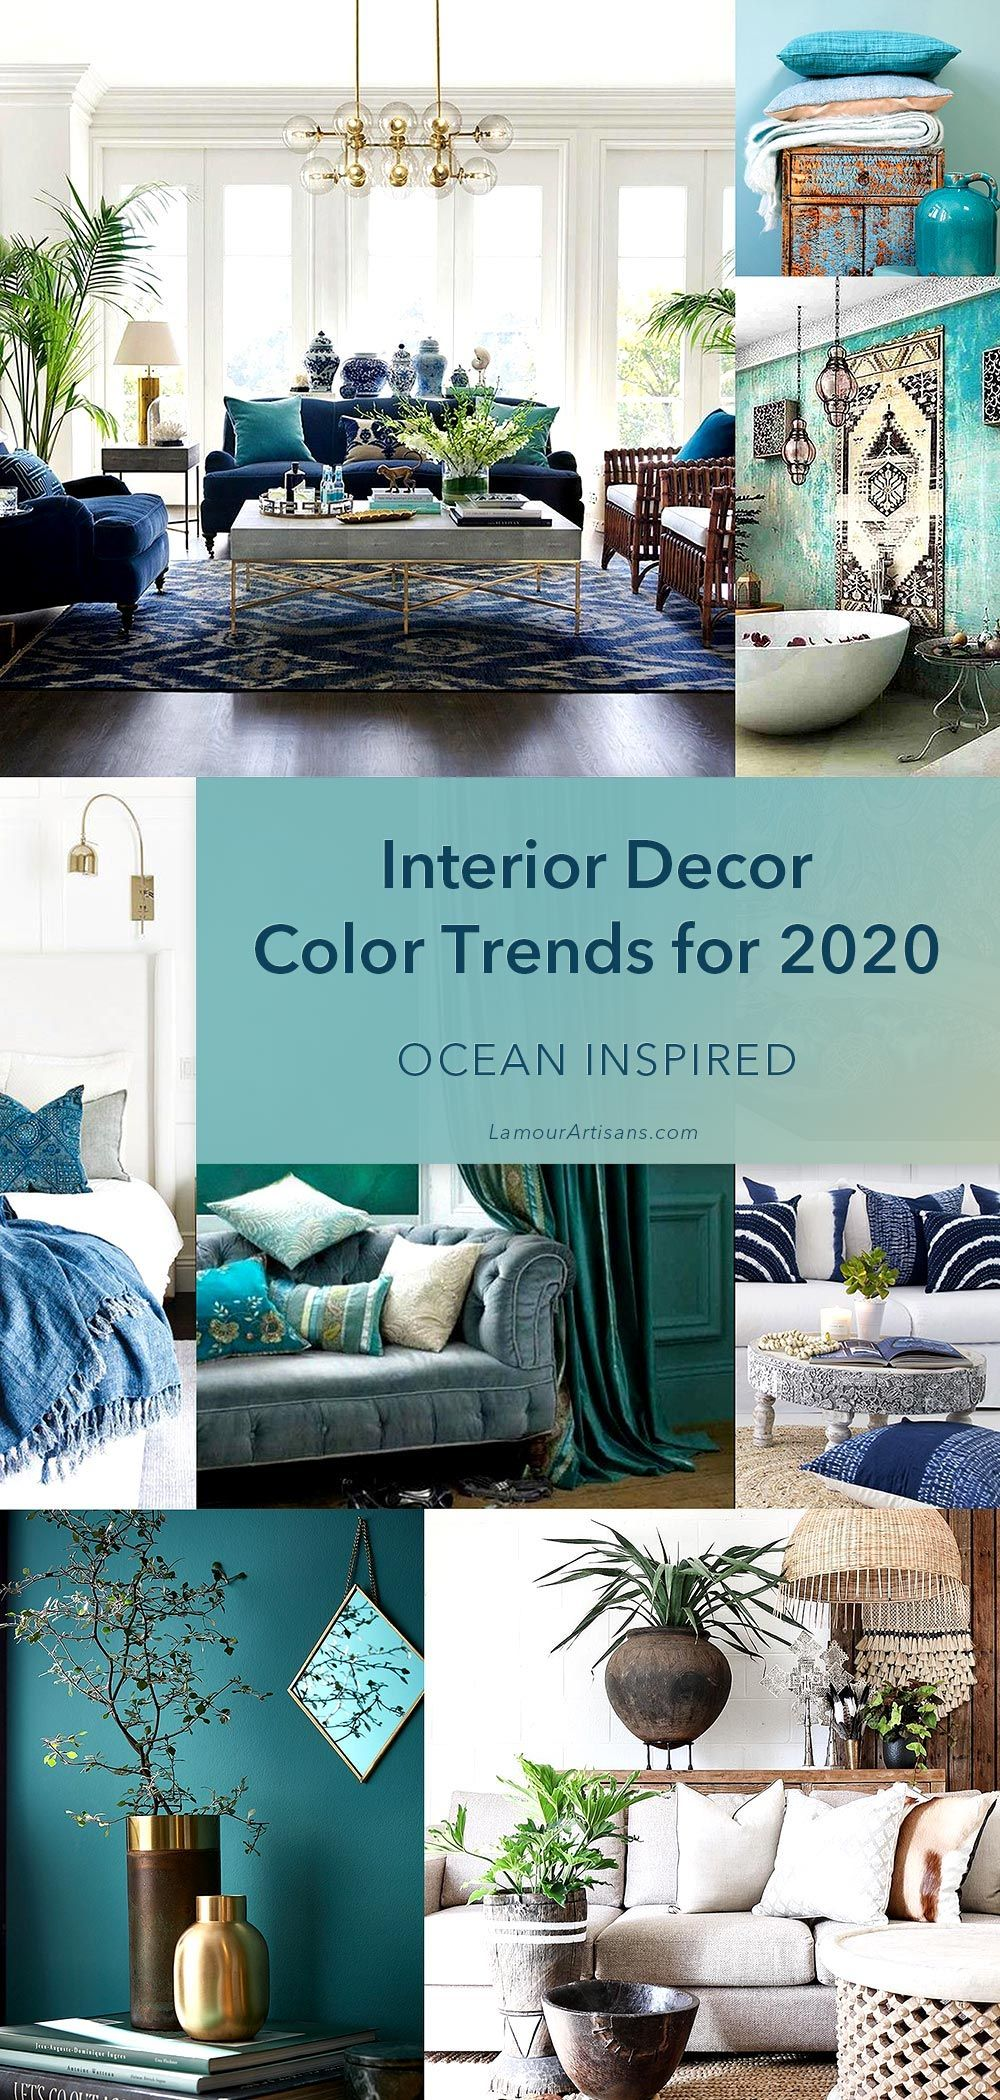 Interior Decor Color Trends For 2020